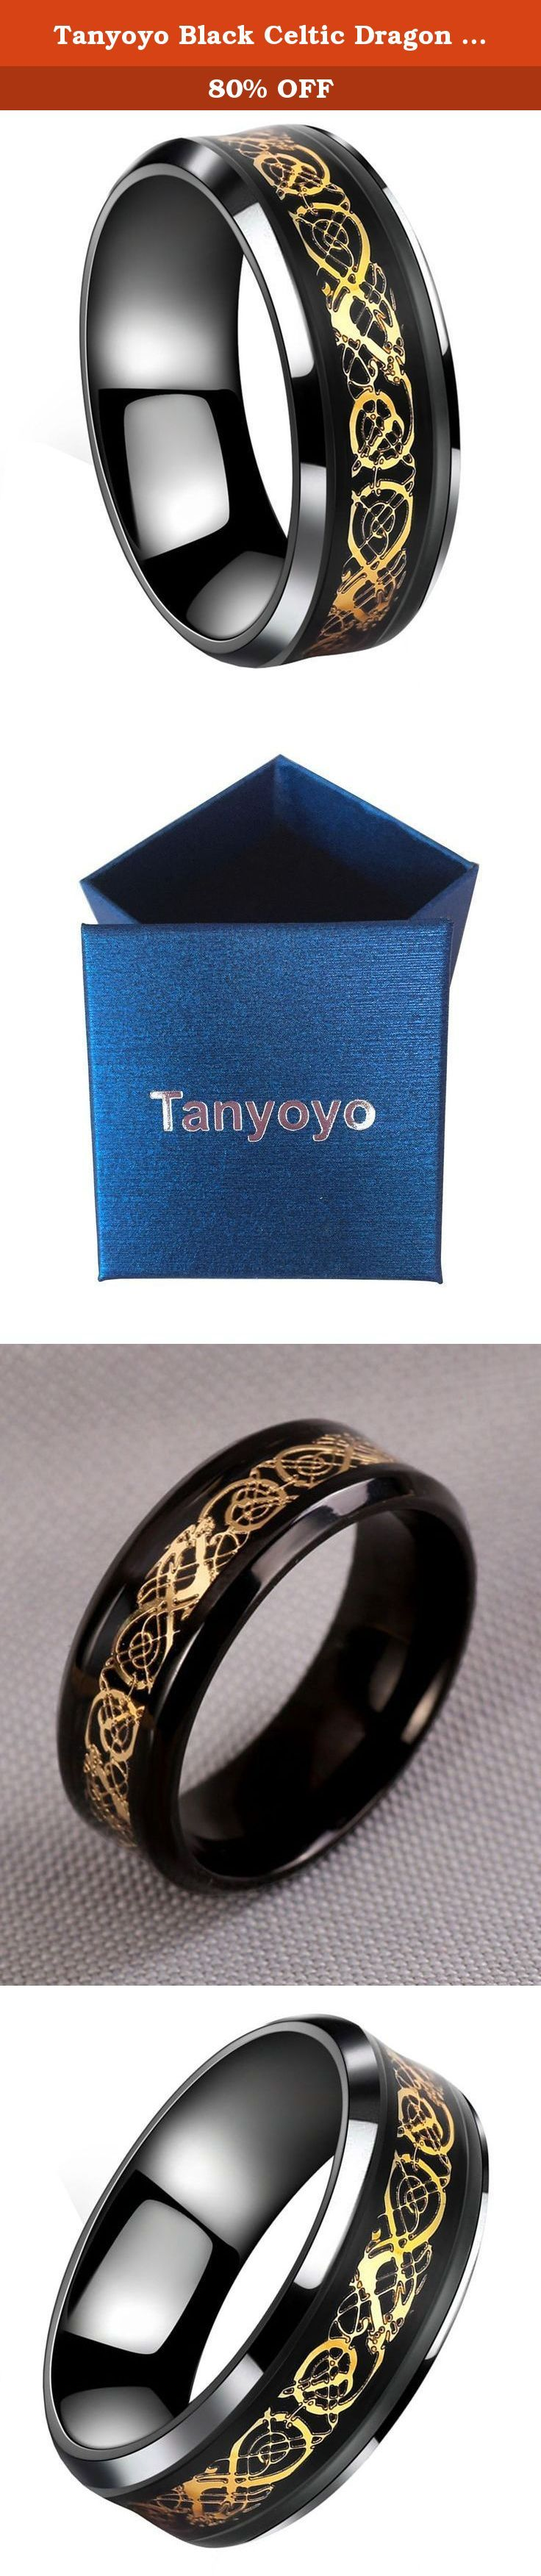 Tanyoyo Black Celtic Dragon Titanium steel Carbide Ring Gold Carbon Fibre Wedding Band Jewelry Size 5-14 (10). Tanyoyo Black Celtic Dragon Titanium steel Carbide Ring Gold Carbon Fibre Wedding Band Jewelry TANYOYO JEWELRY are mainly engaged in all kinds of stainless steel, titanium steel, Tungsten steel jewelry. Including earrings, necklaces, pendants, bracelets and bangles and so on. Our products are fashion, high-quality and affordable. We are committed to provide you with the latest…